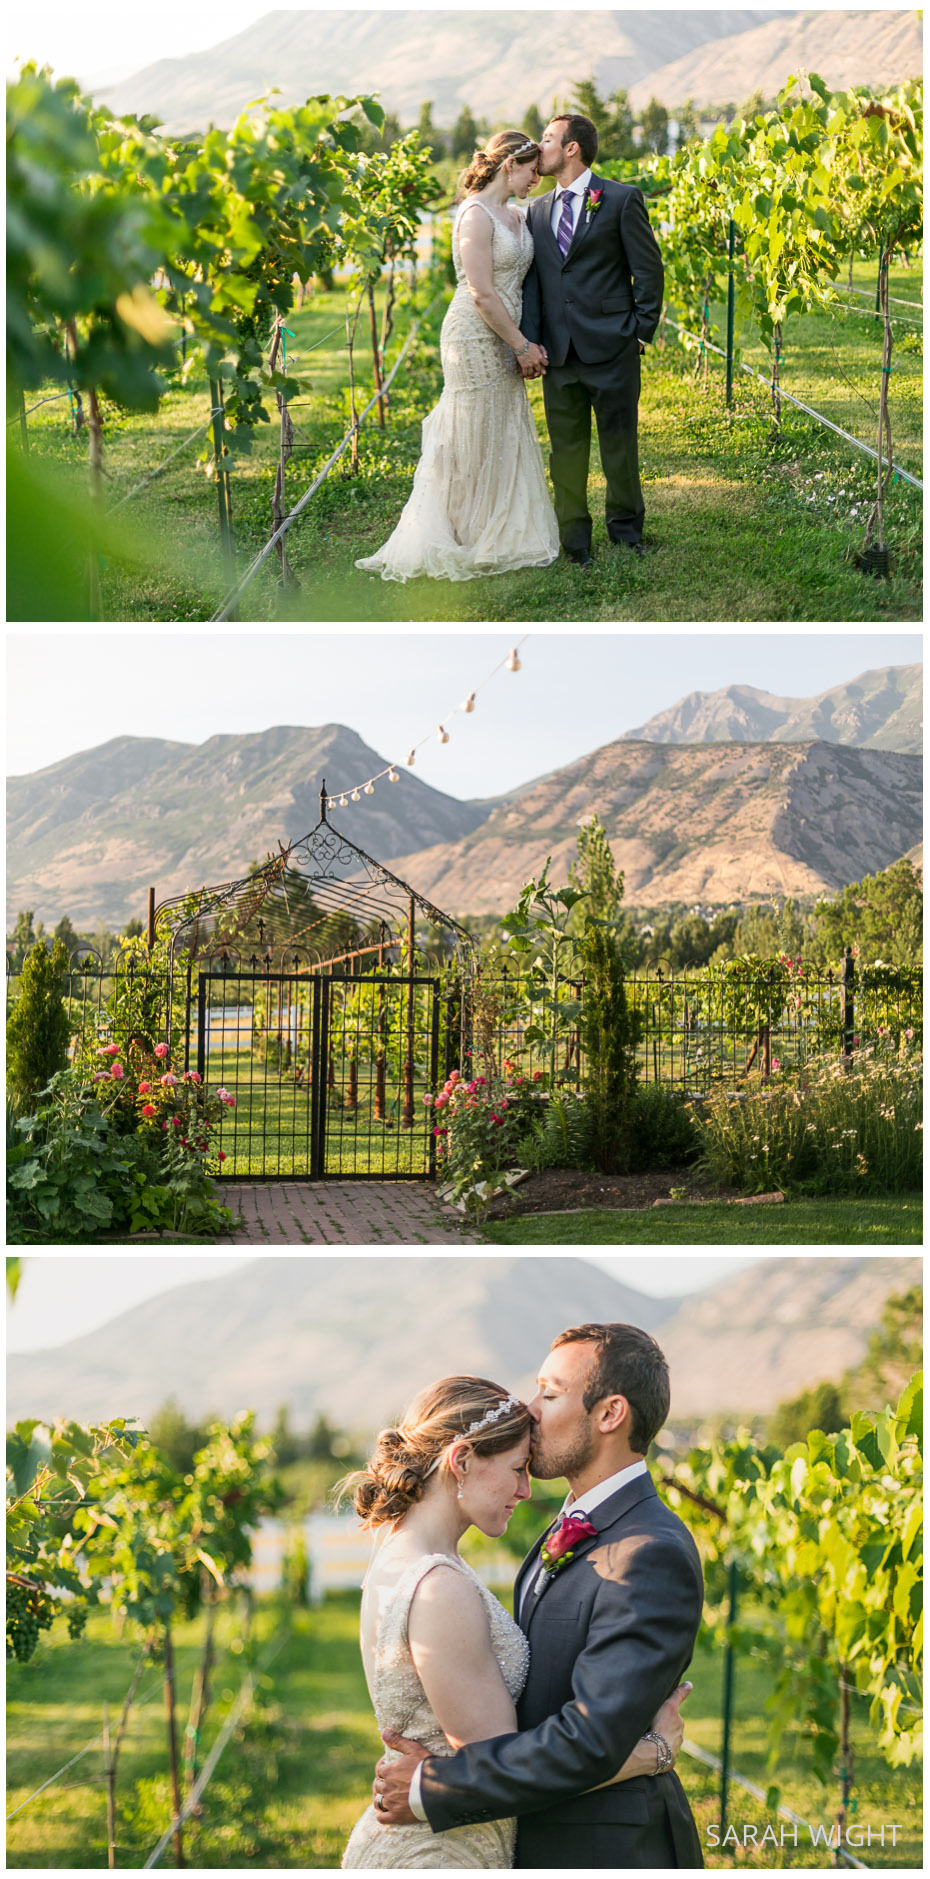 D29 Utah Bride Groom Rustic Wedding Venue Wadley Farm.jpg